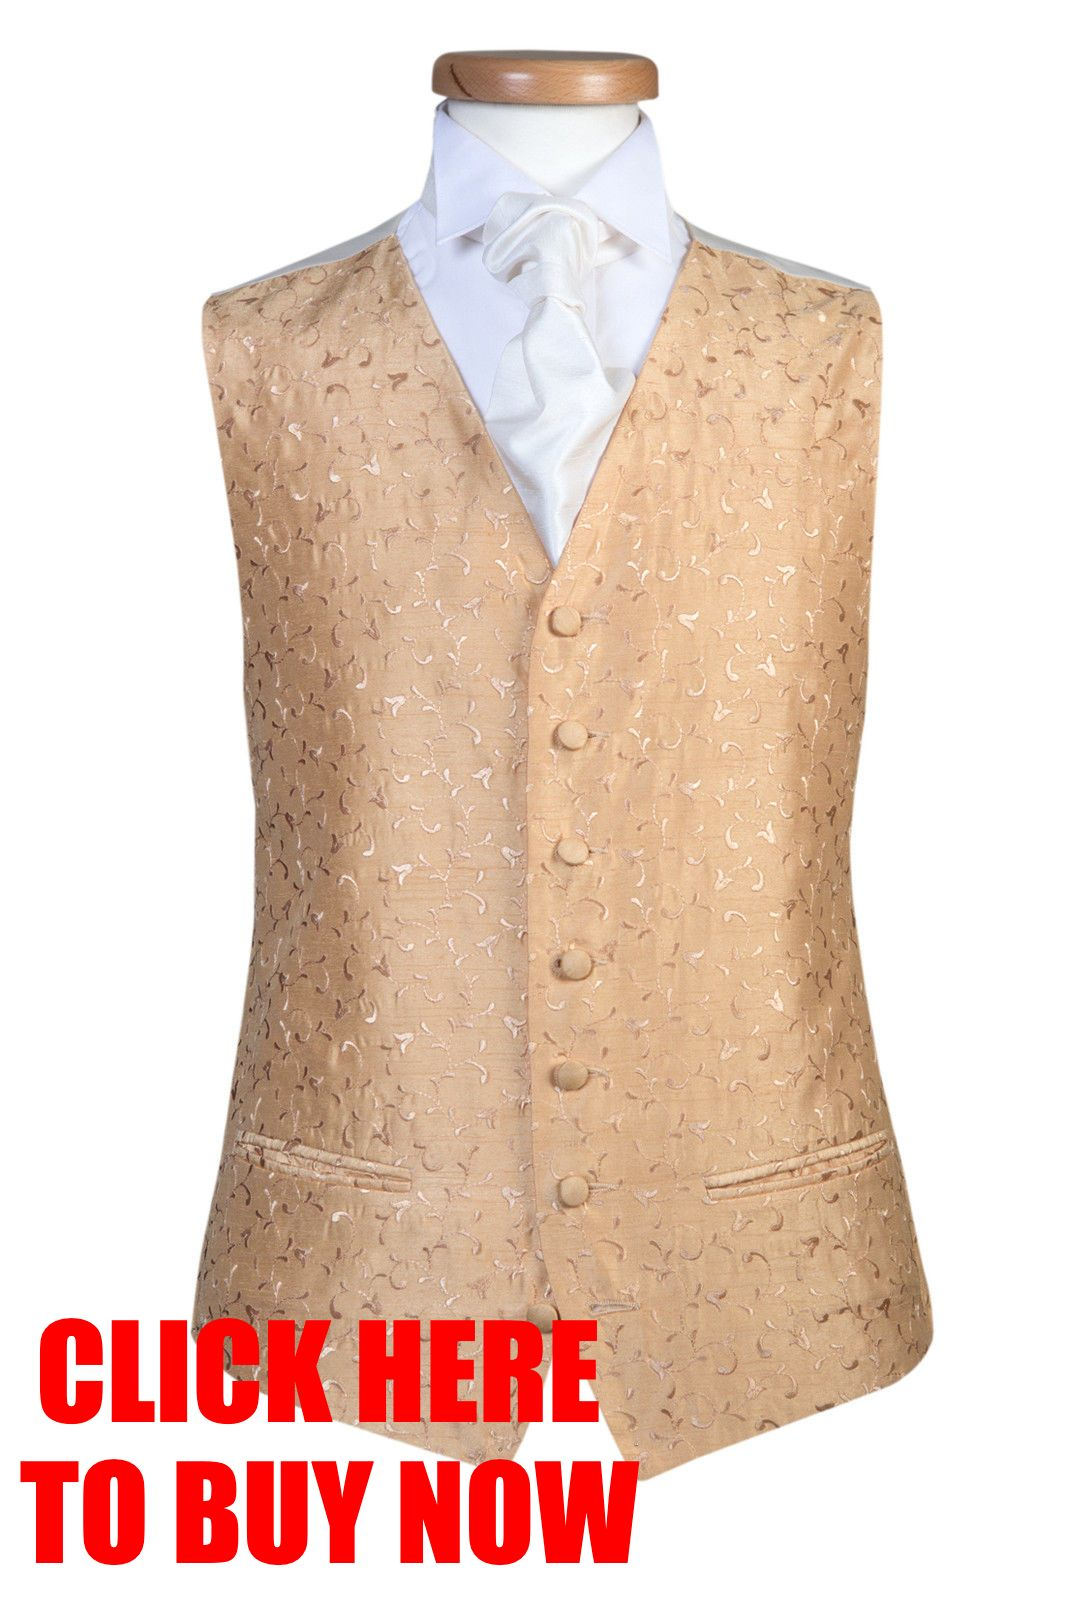 MENS-PAGE-BOYS-GOLD-LEAF-SWIRL-TUXEDO-PARTY-WEDDING-DRESS-CRUISE-WAISTCOAT